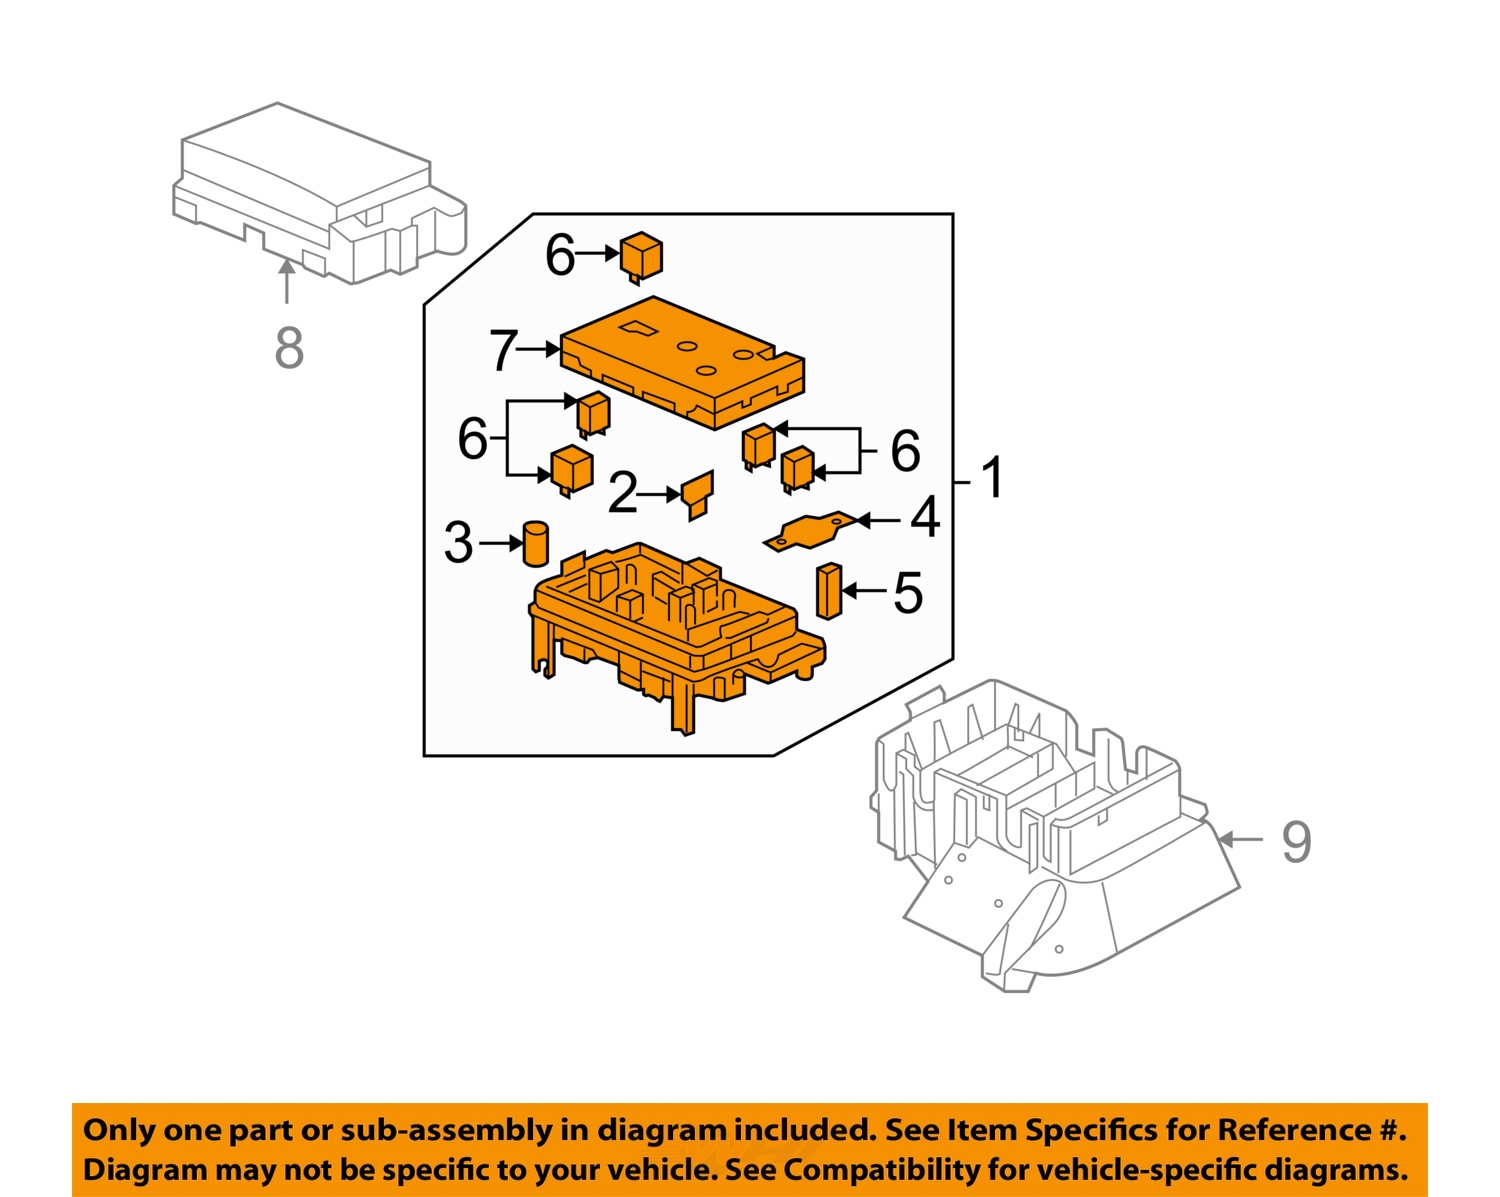 AR04185_1Full buick gm oem 05 06 rainier electrical fuse & relay box 15141559 ebay 2008 Buick Lucerne CXL at couponss.co